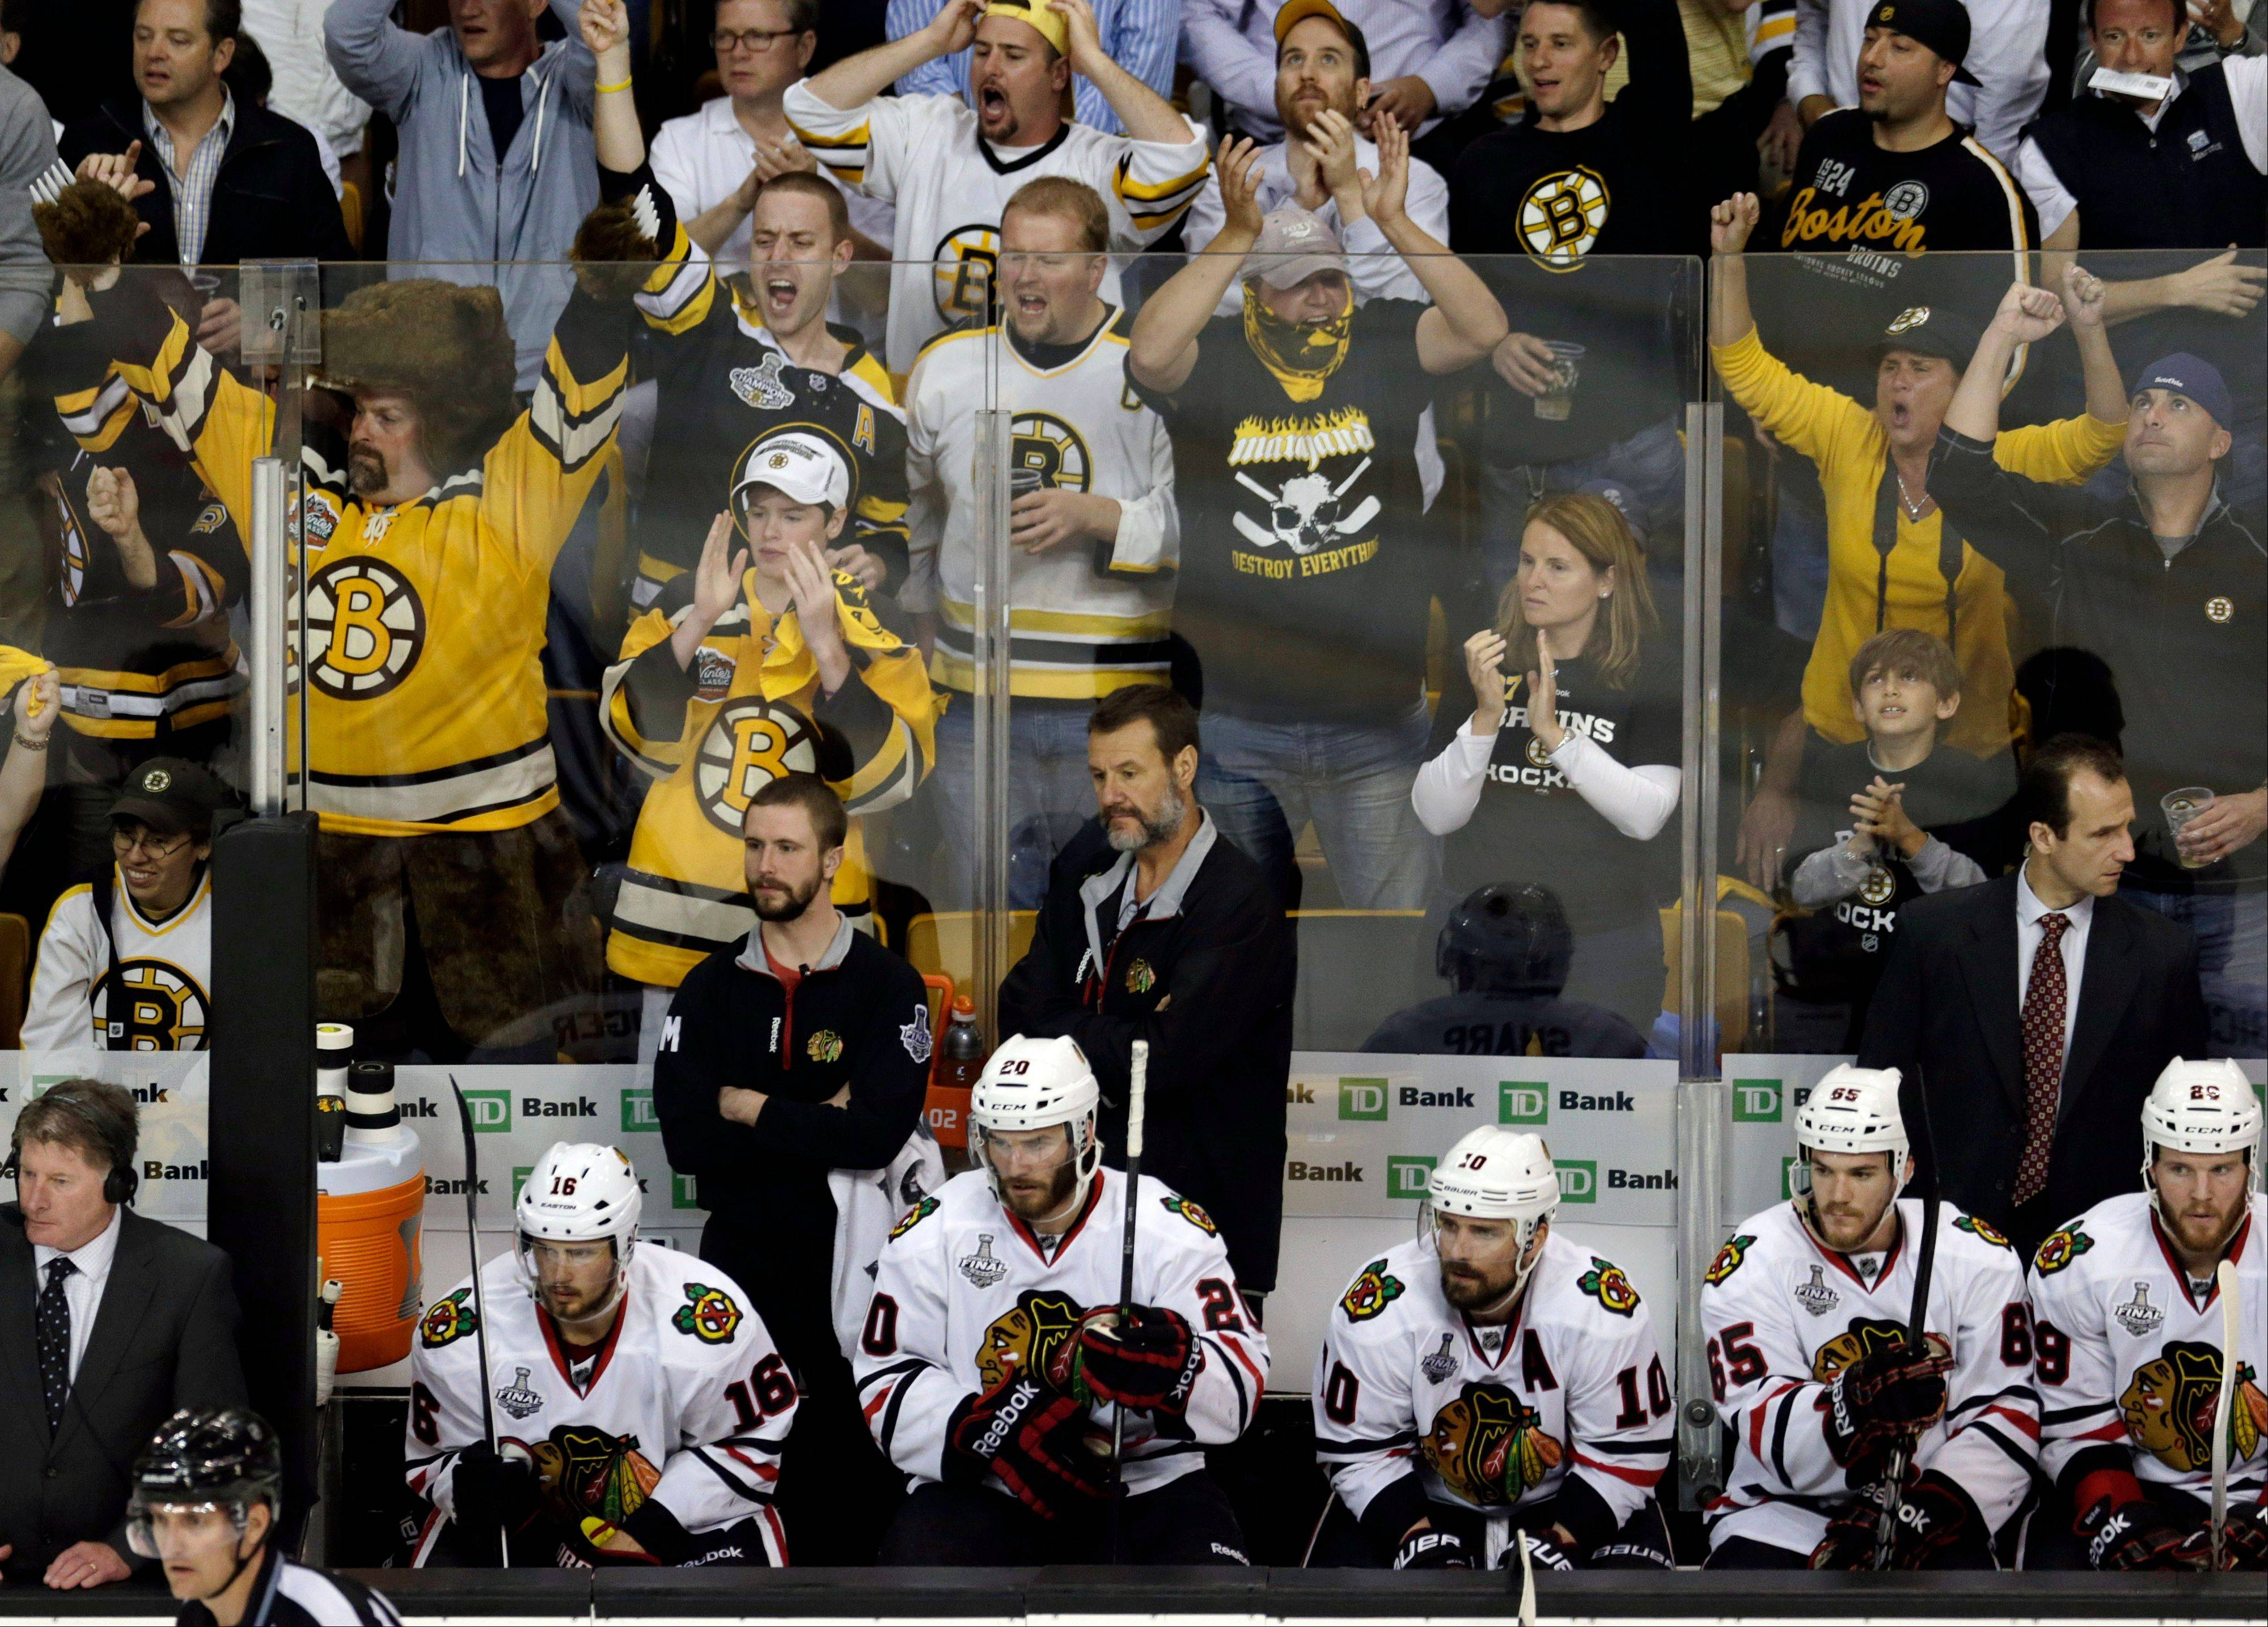 Bruins fans cheer behind the Blackhawks' bench during the third period of Game 3 Monday in Boston.